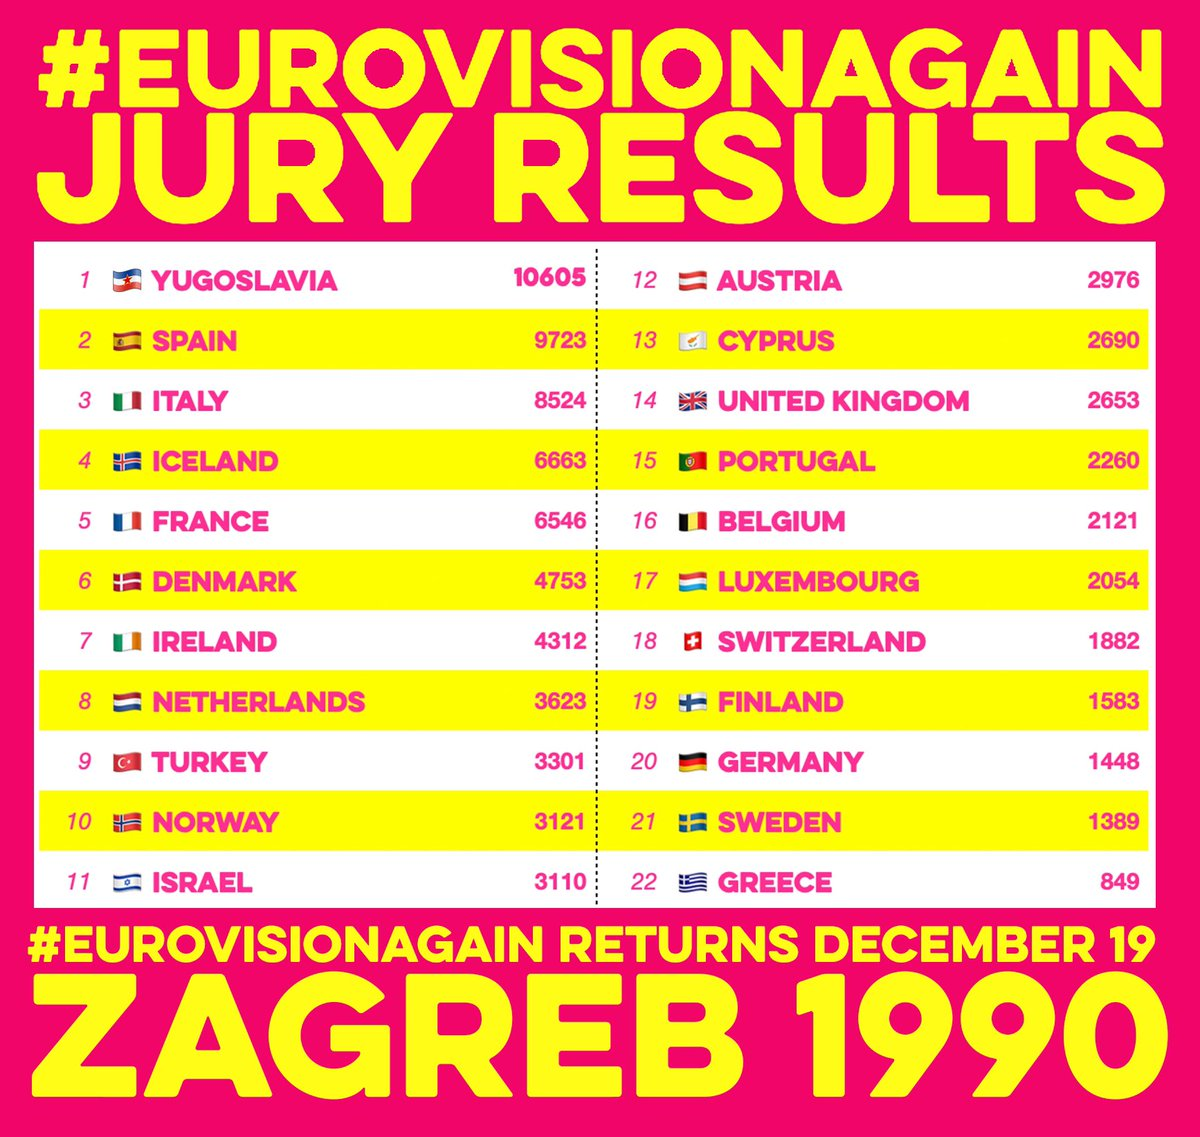 🗳 #EurovisionAgainResults 🗳  Votes have been checked and verified.  Thank you @Mentimeter 🙏   Here are the scores from ZAGREB 1990 Twitter jury ⭐️   ✨ A HOME WIN FOR TAJČI OF YUGOSLAVIA ⭐️ ✨   🥇 ⭐️ 🥈 🇪🇸 🥉 🇮🇹  Congratulations @TajciCameron 👏👏 https://t.co/WY6x2gMJpr